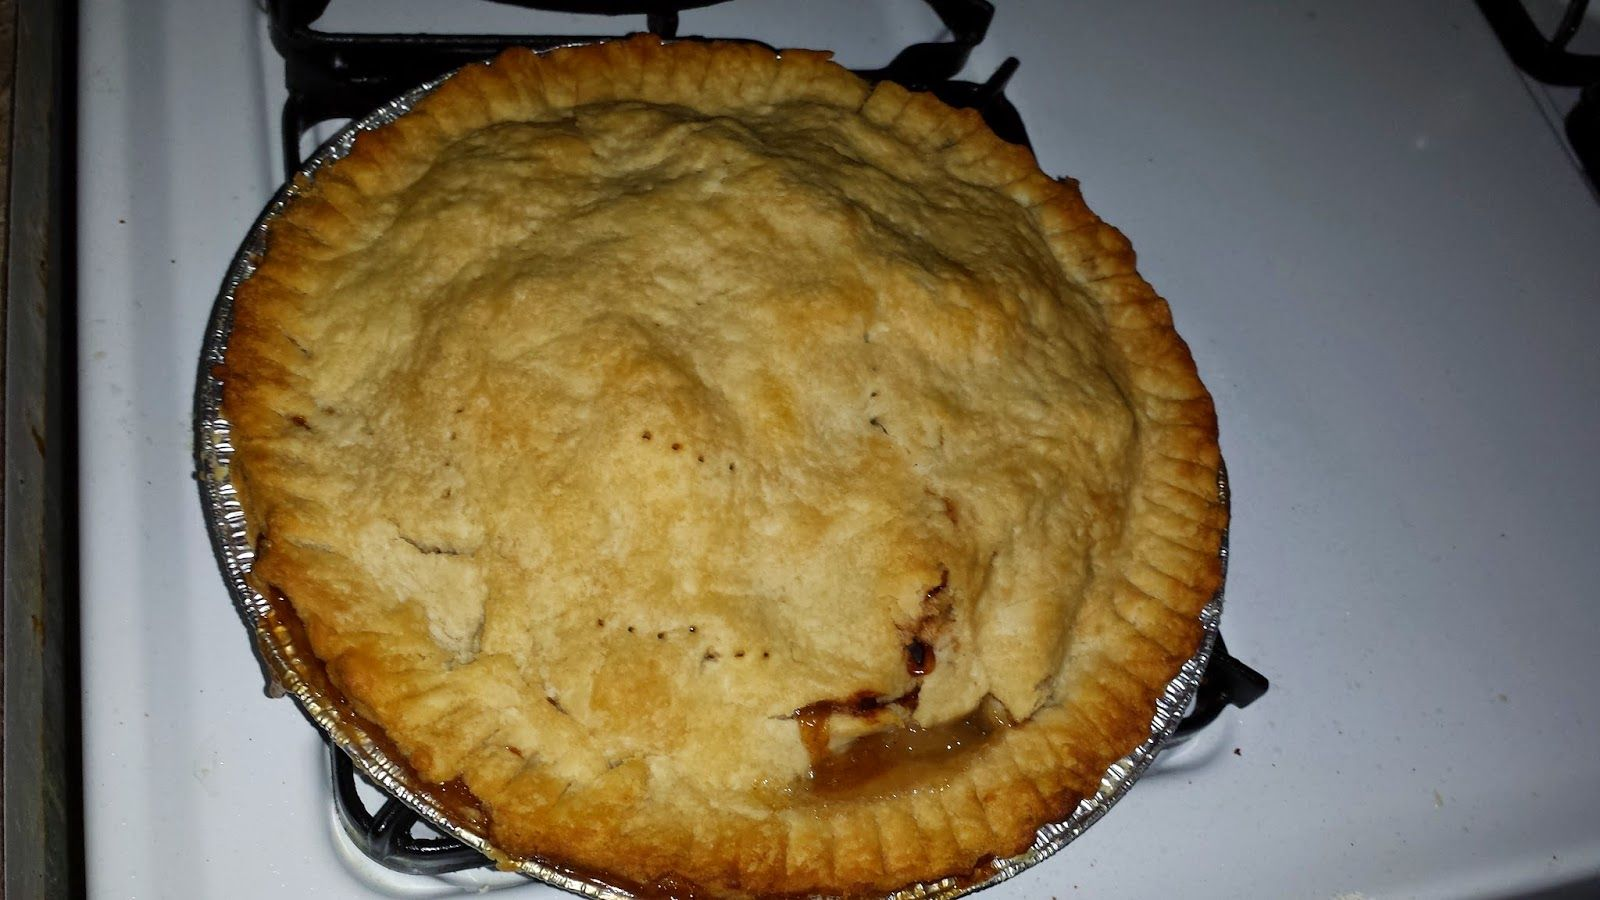 Drink recipes for you crown royal regal apple pie recipe food drink recipes for you crown royal regal apple pie recipe forumfinder Images